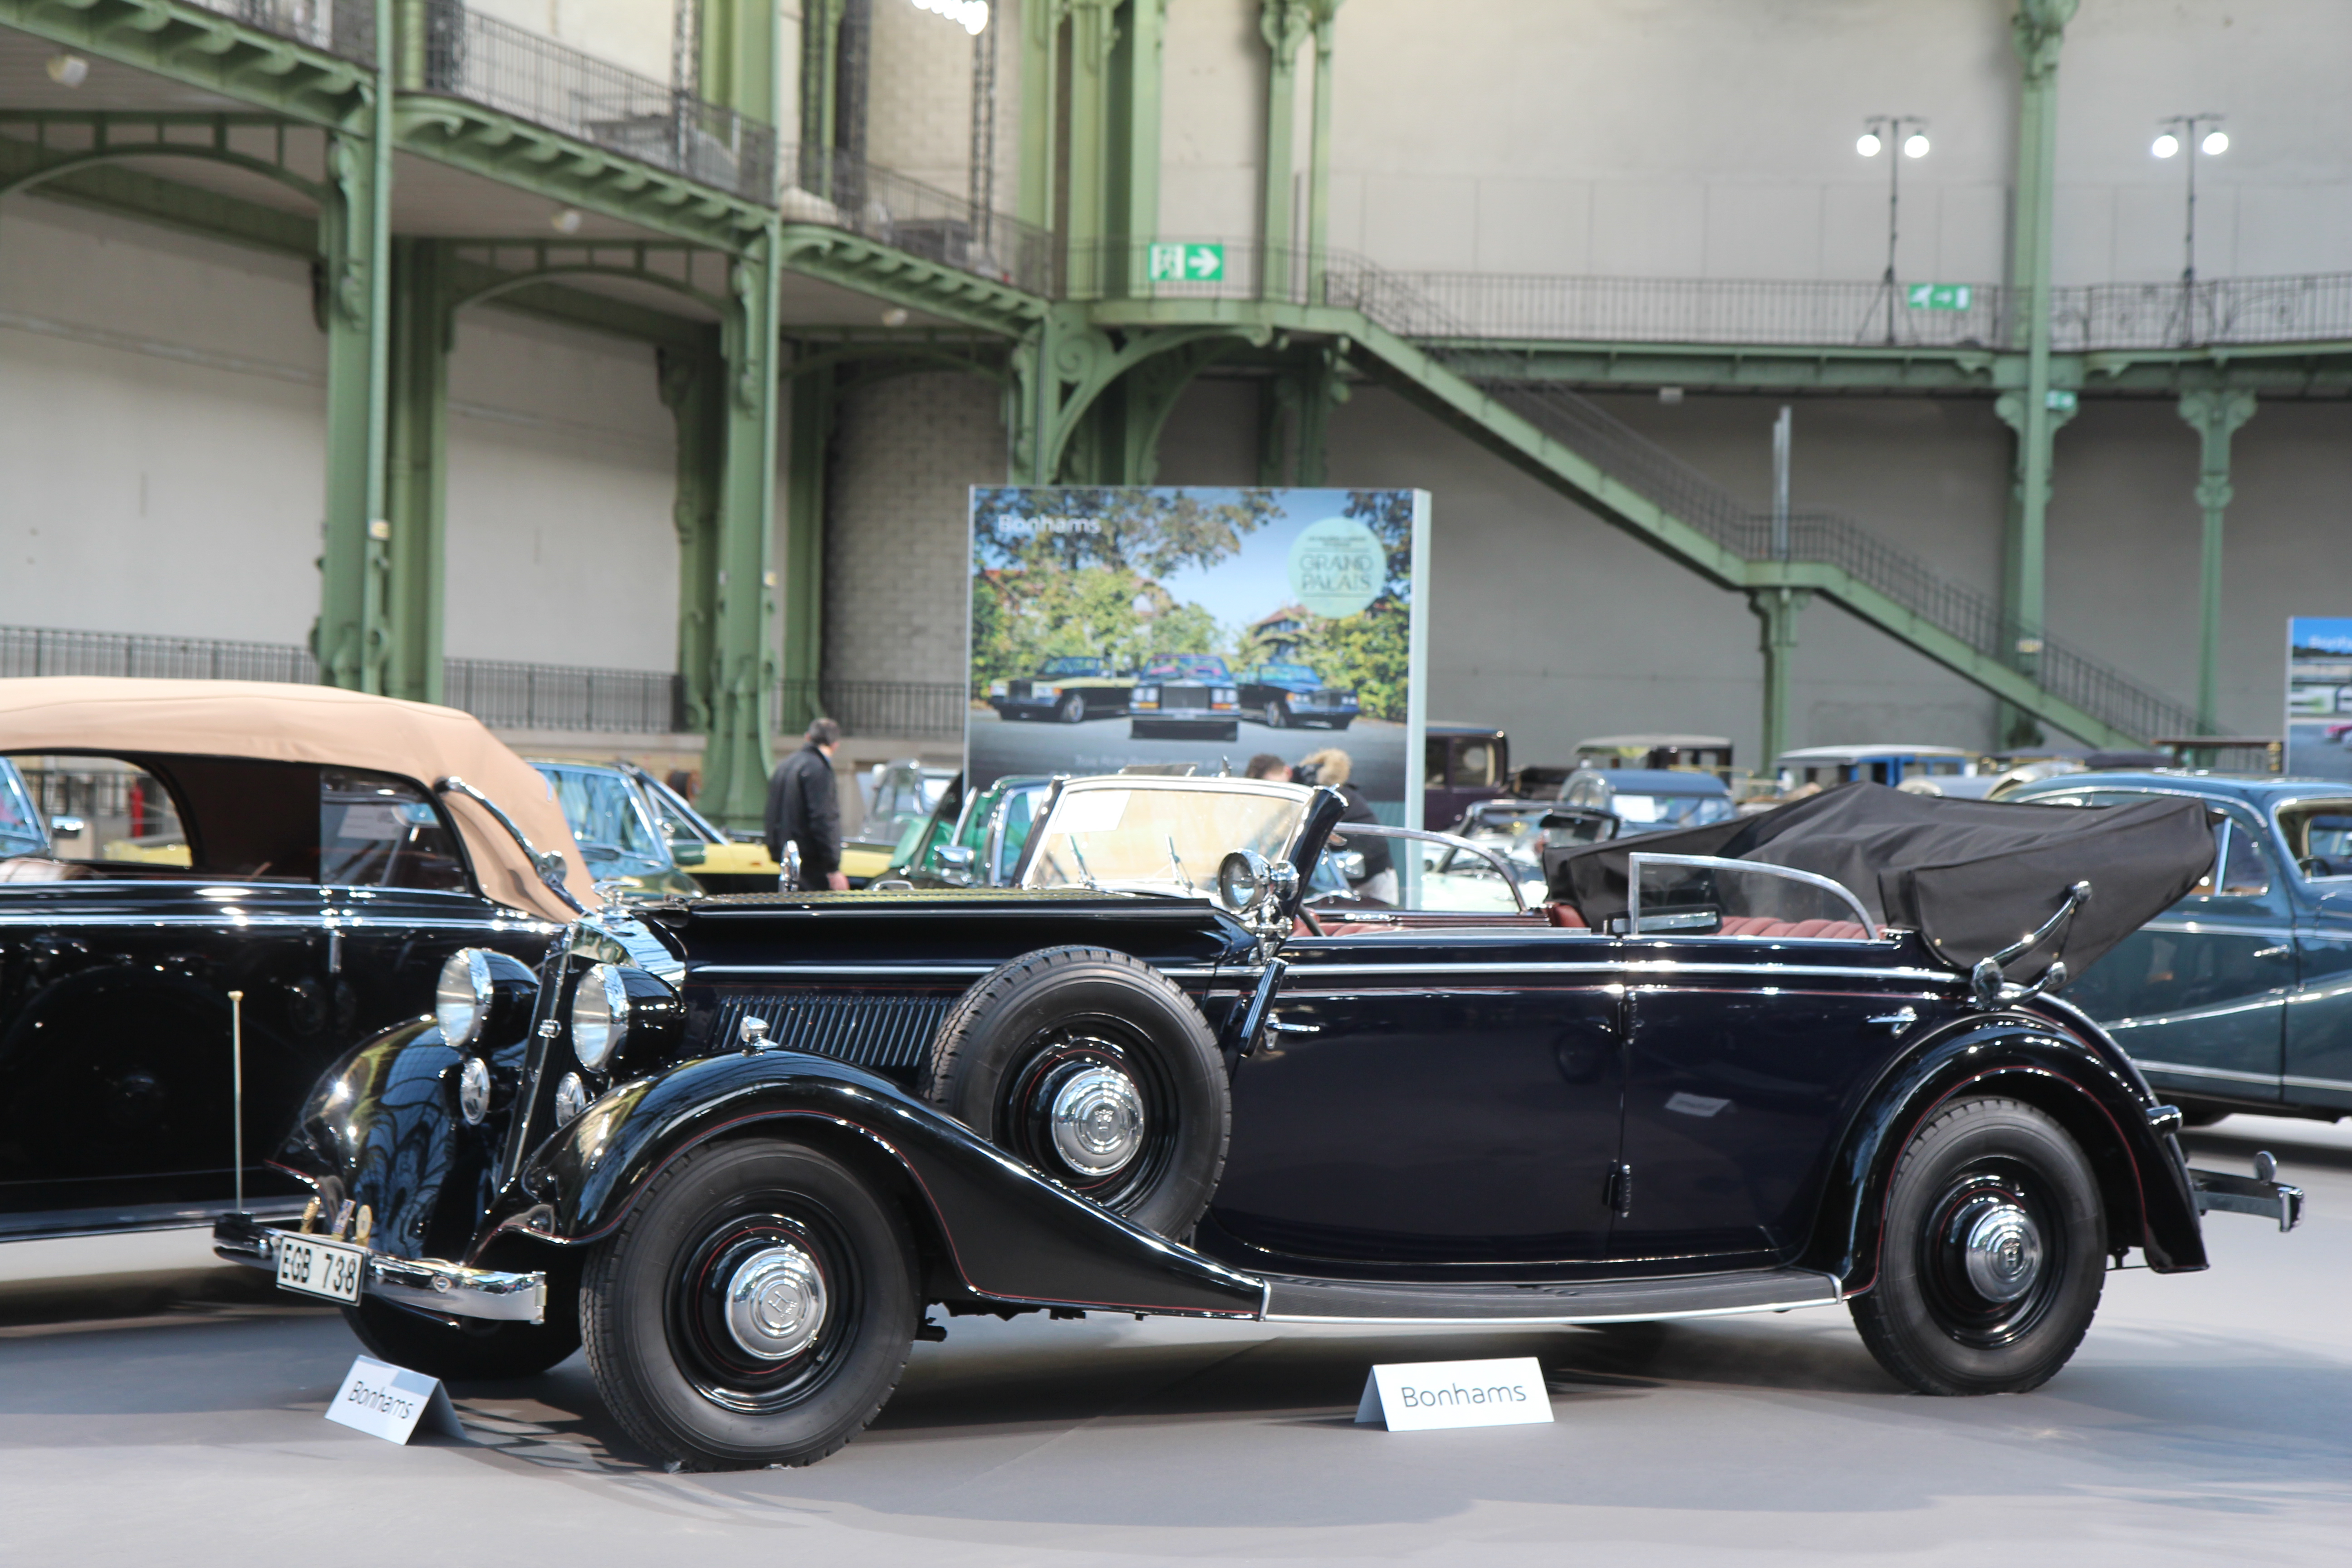 Paris 2019: Bonhams